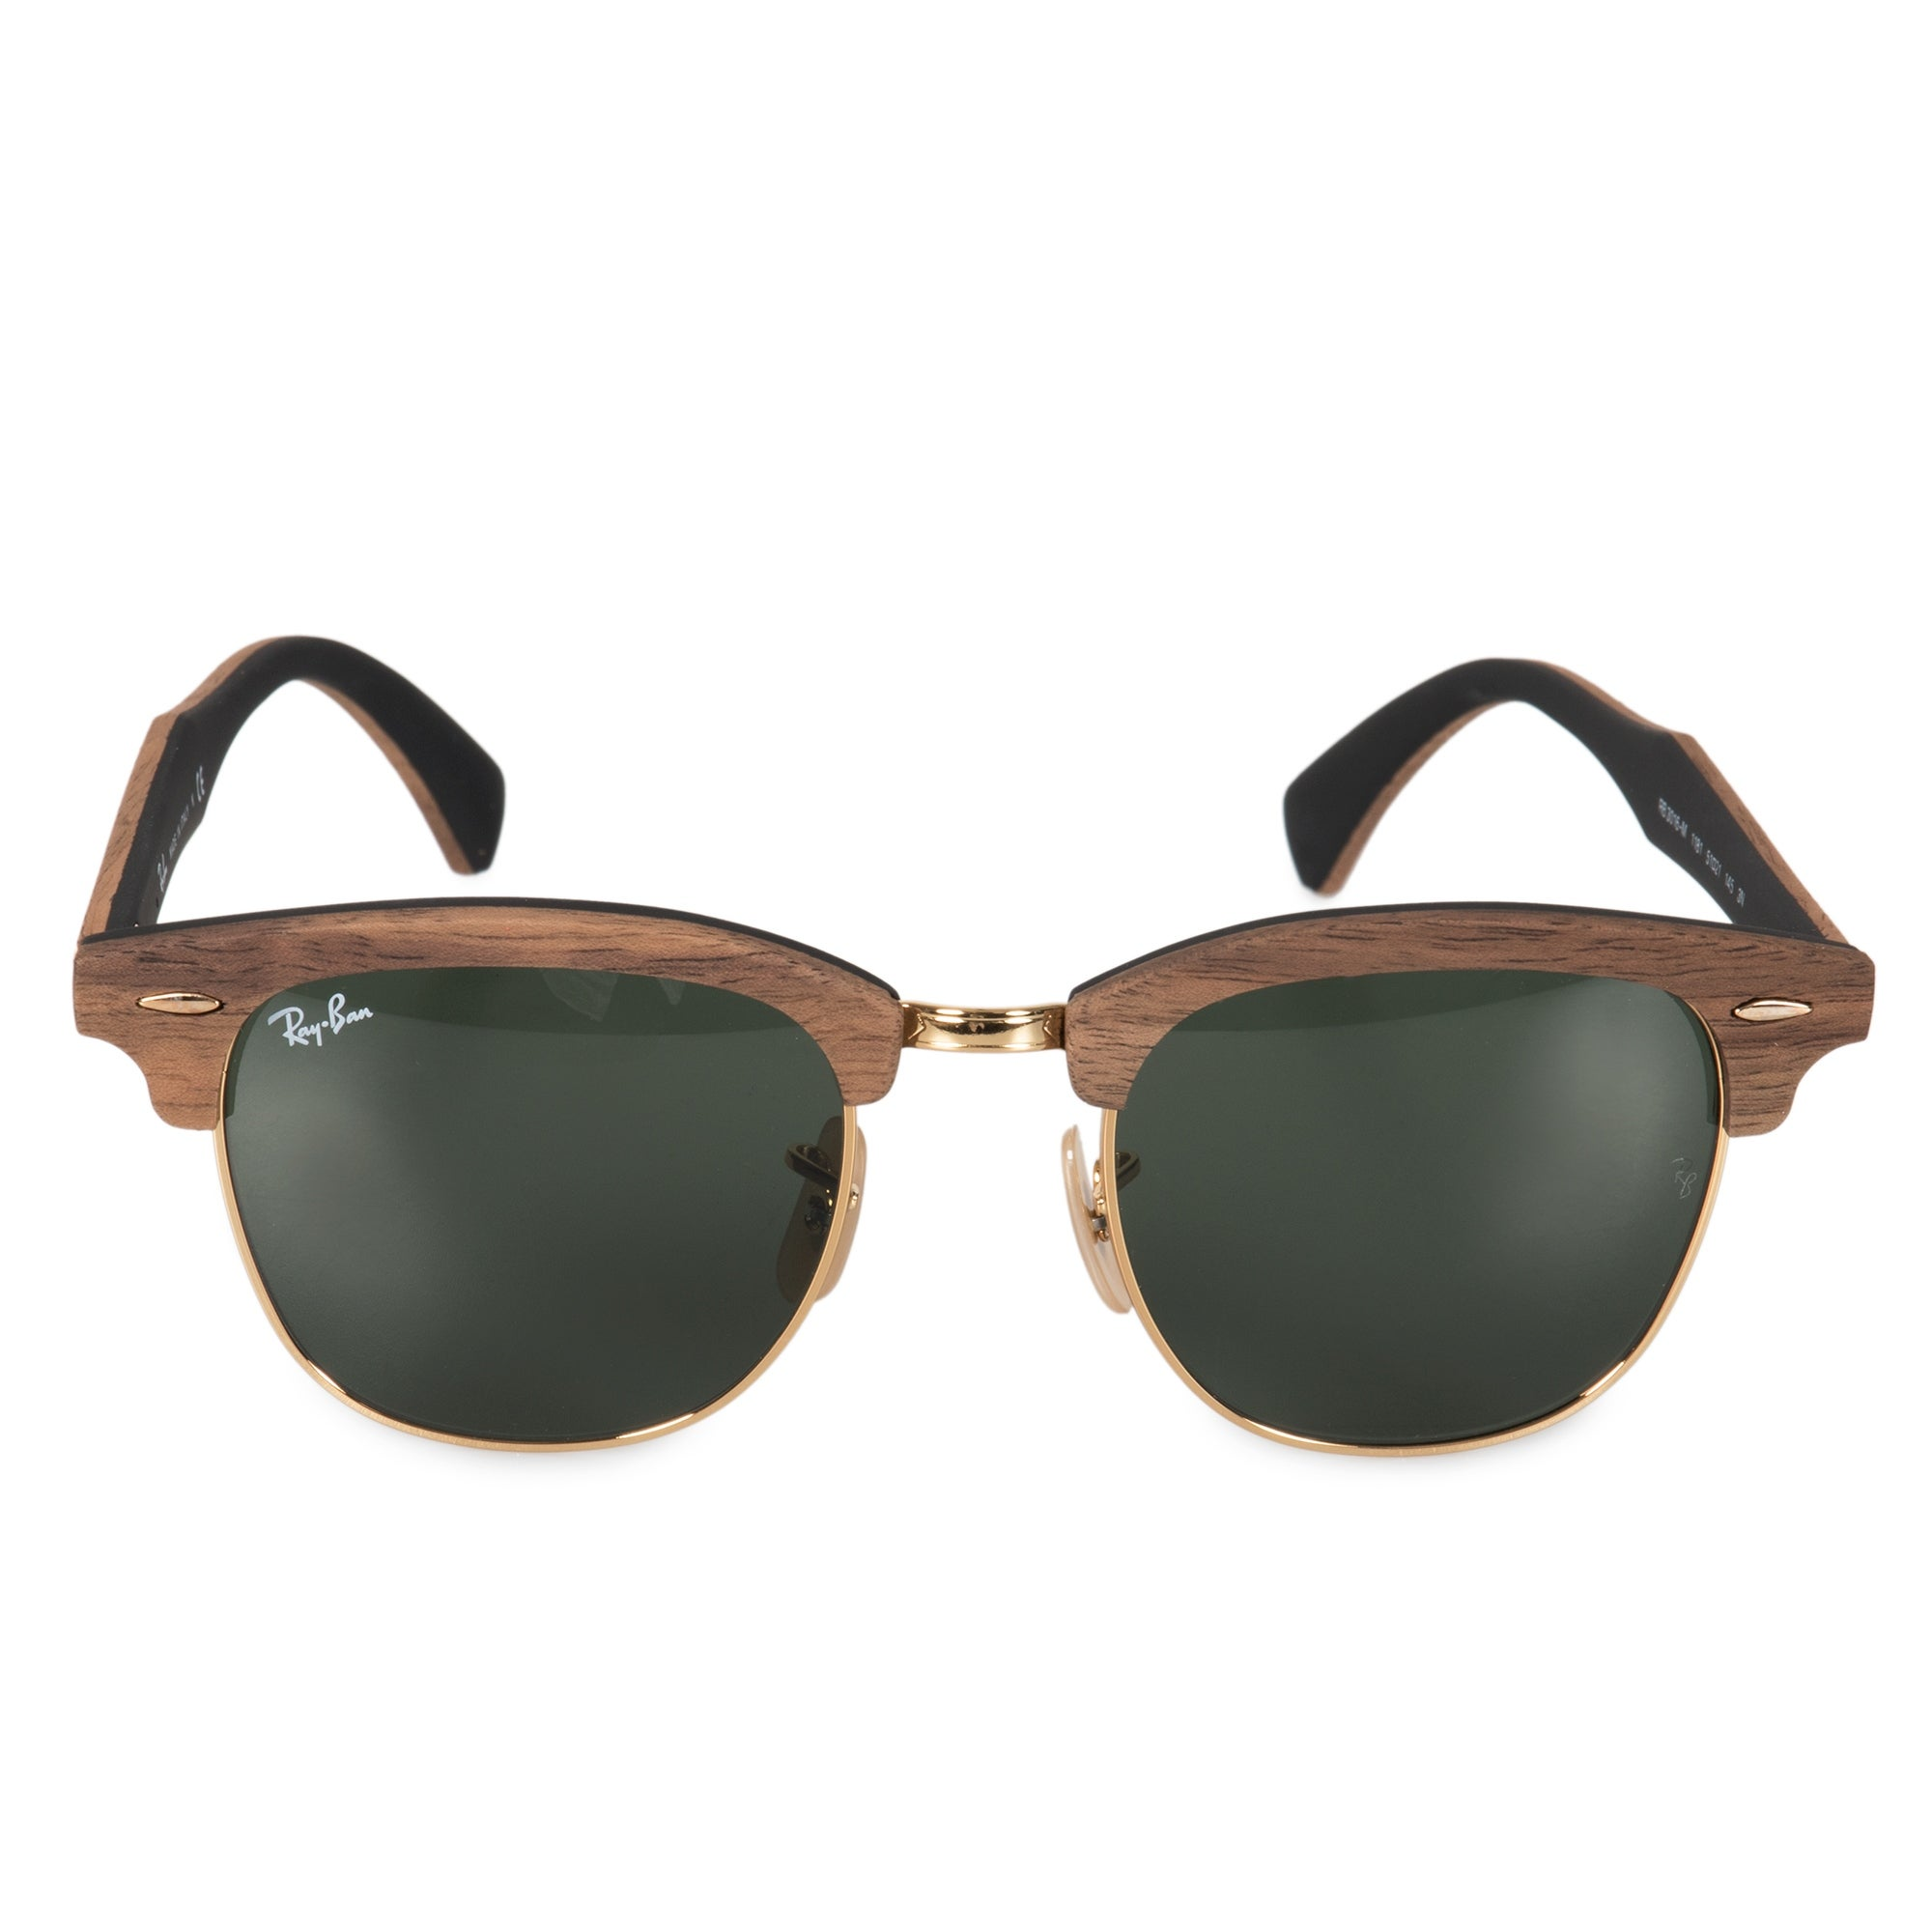 e8c272adeca9 Shop Ray-Ban Clubmaster Wood Sunglasses RB3016M 1181 51 - Free ...